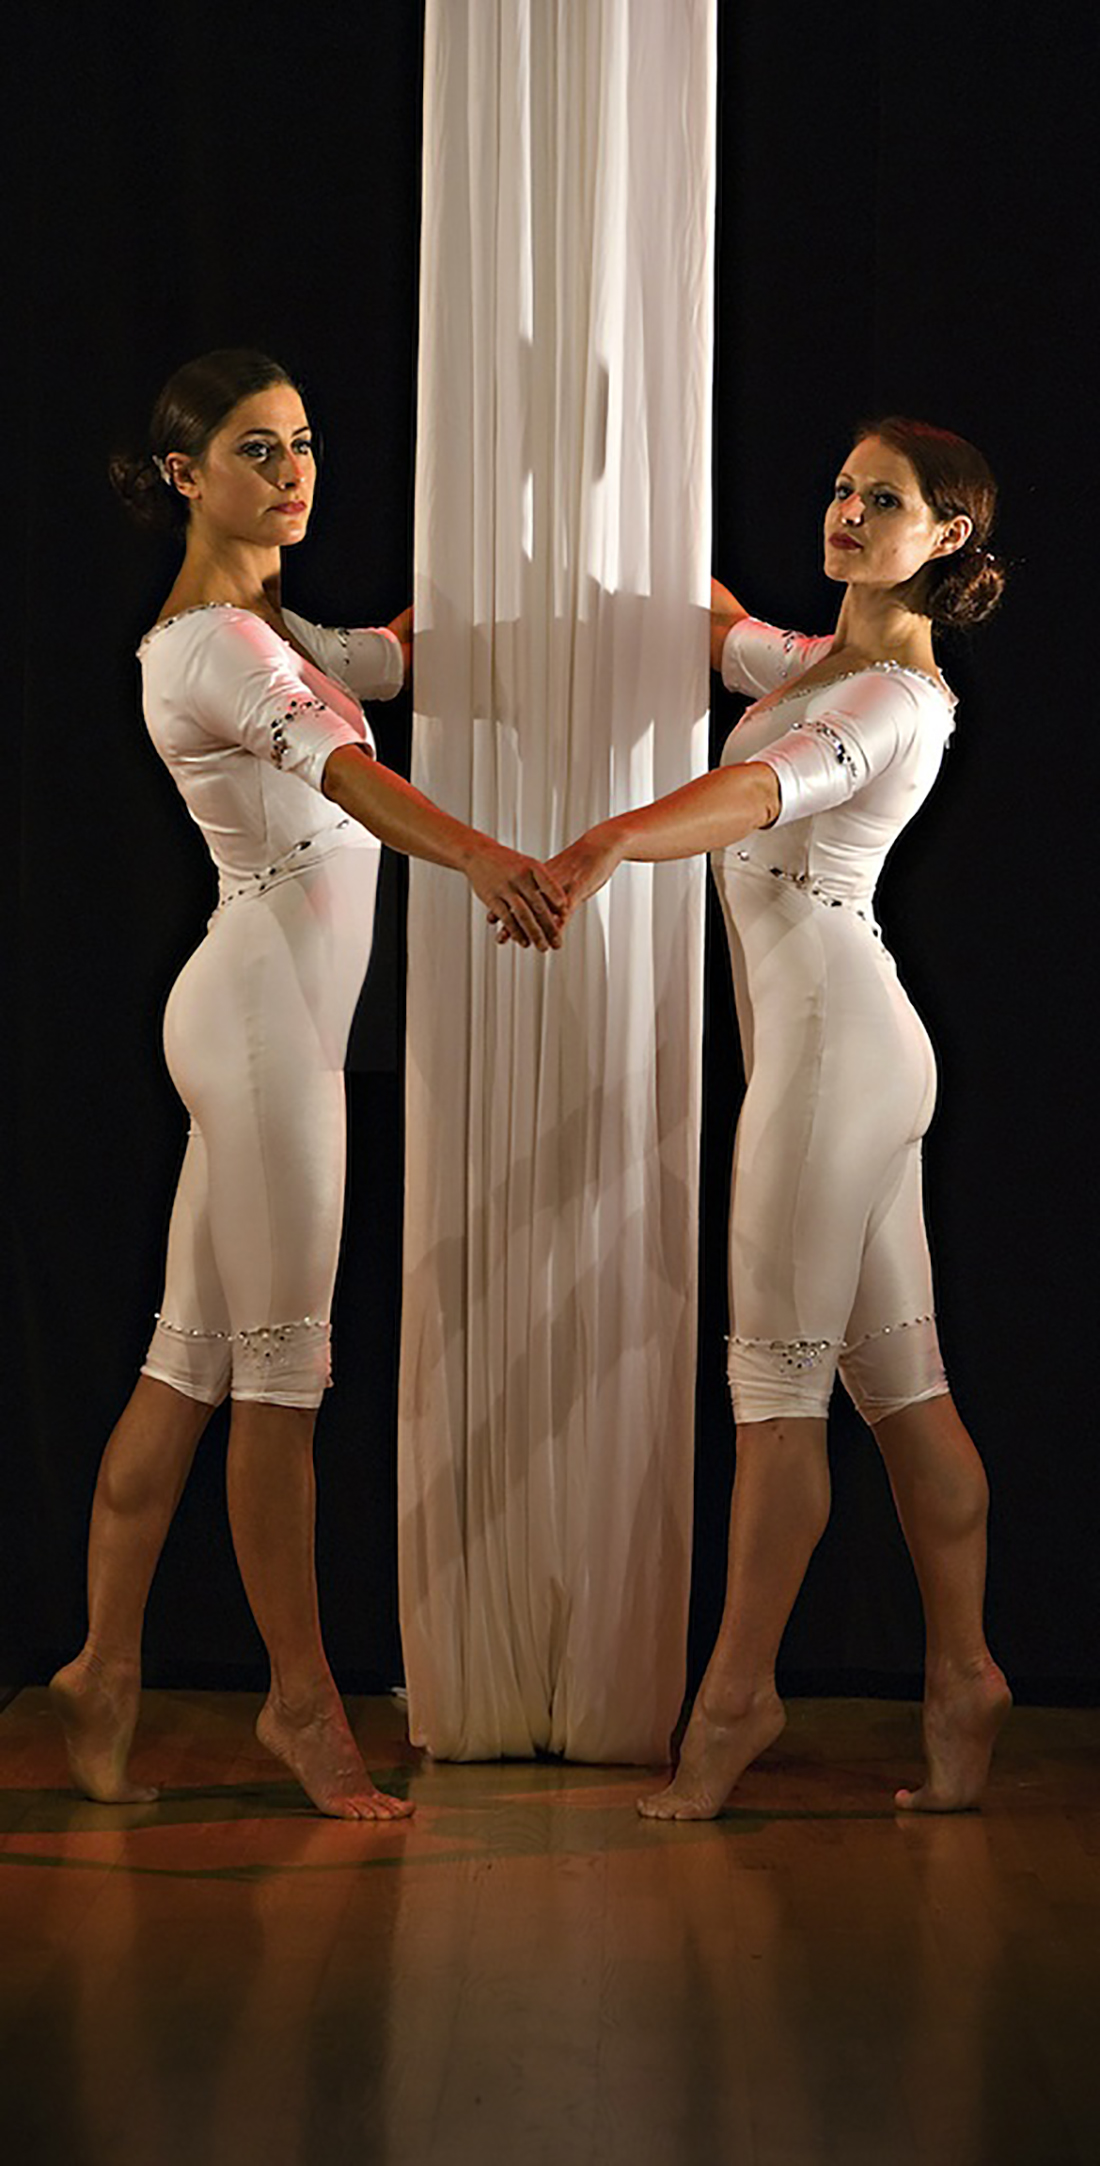 White mid length catsuits with crystals